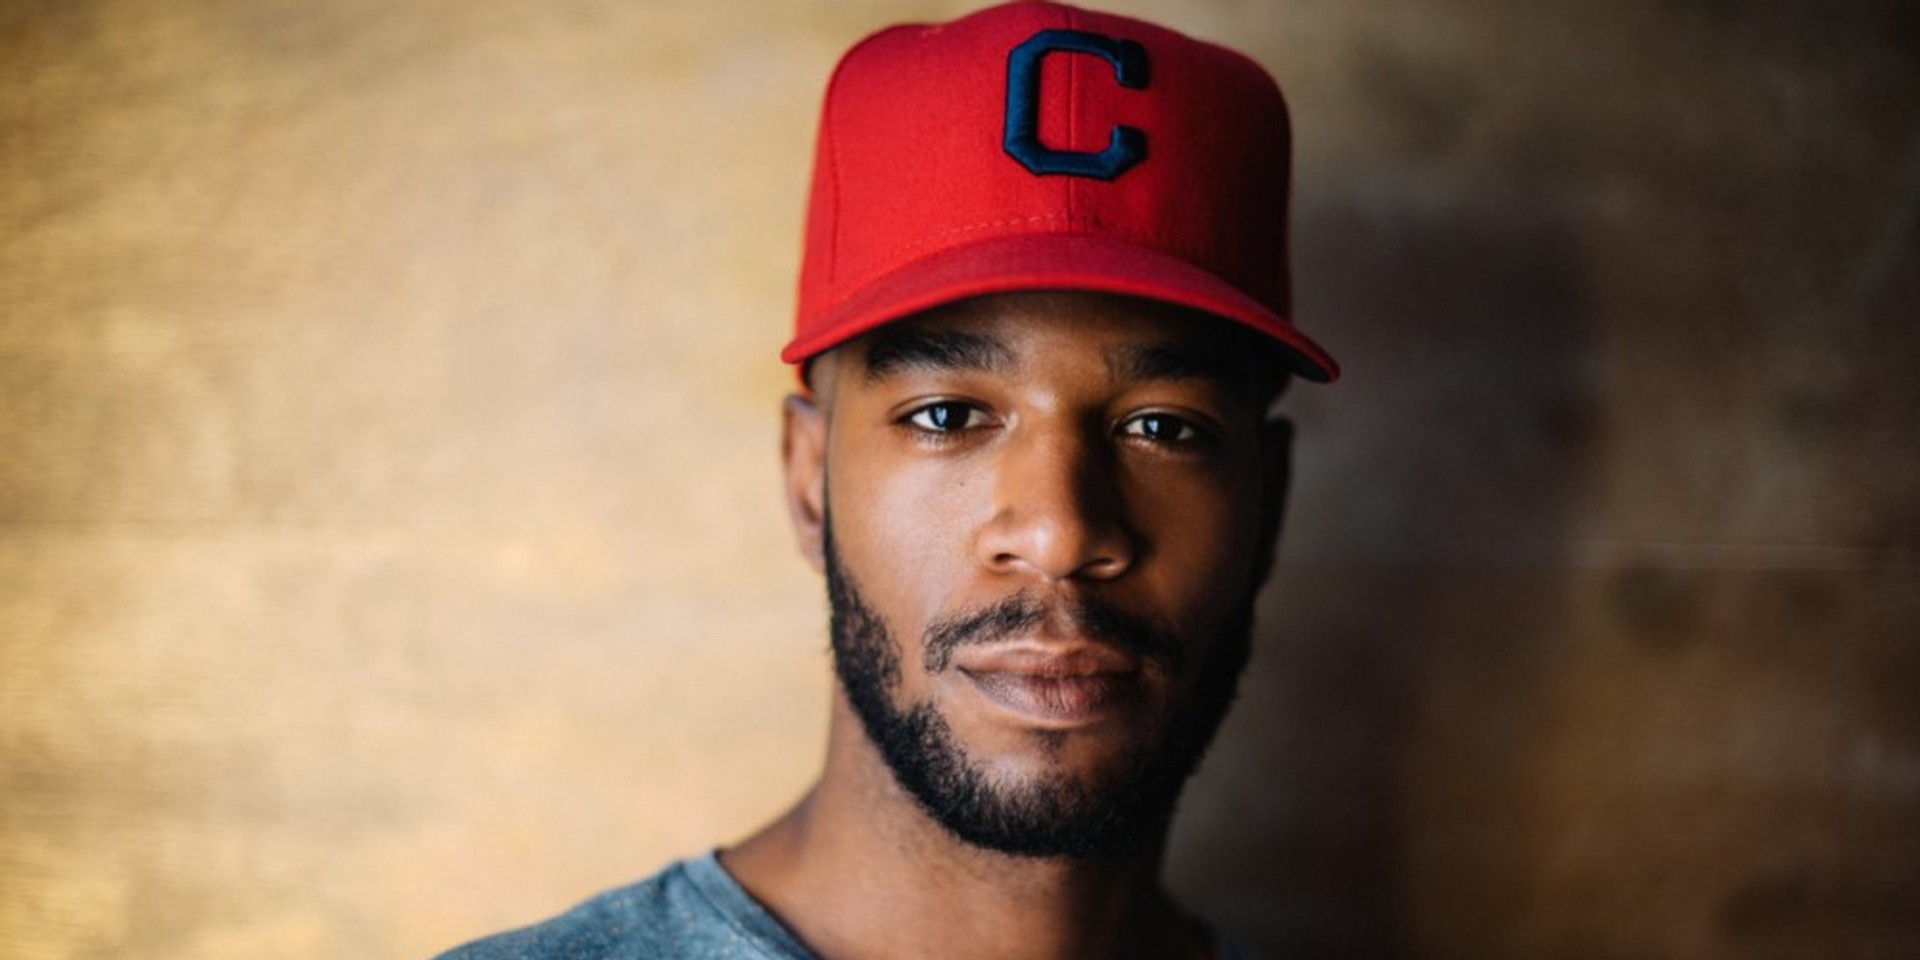 Kid Cudi reveals that new music is coming soon